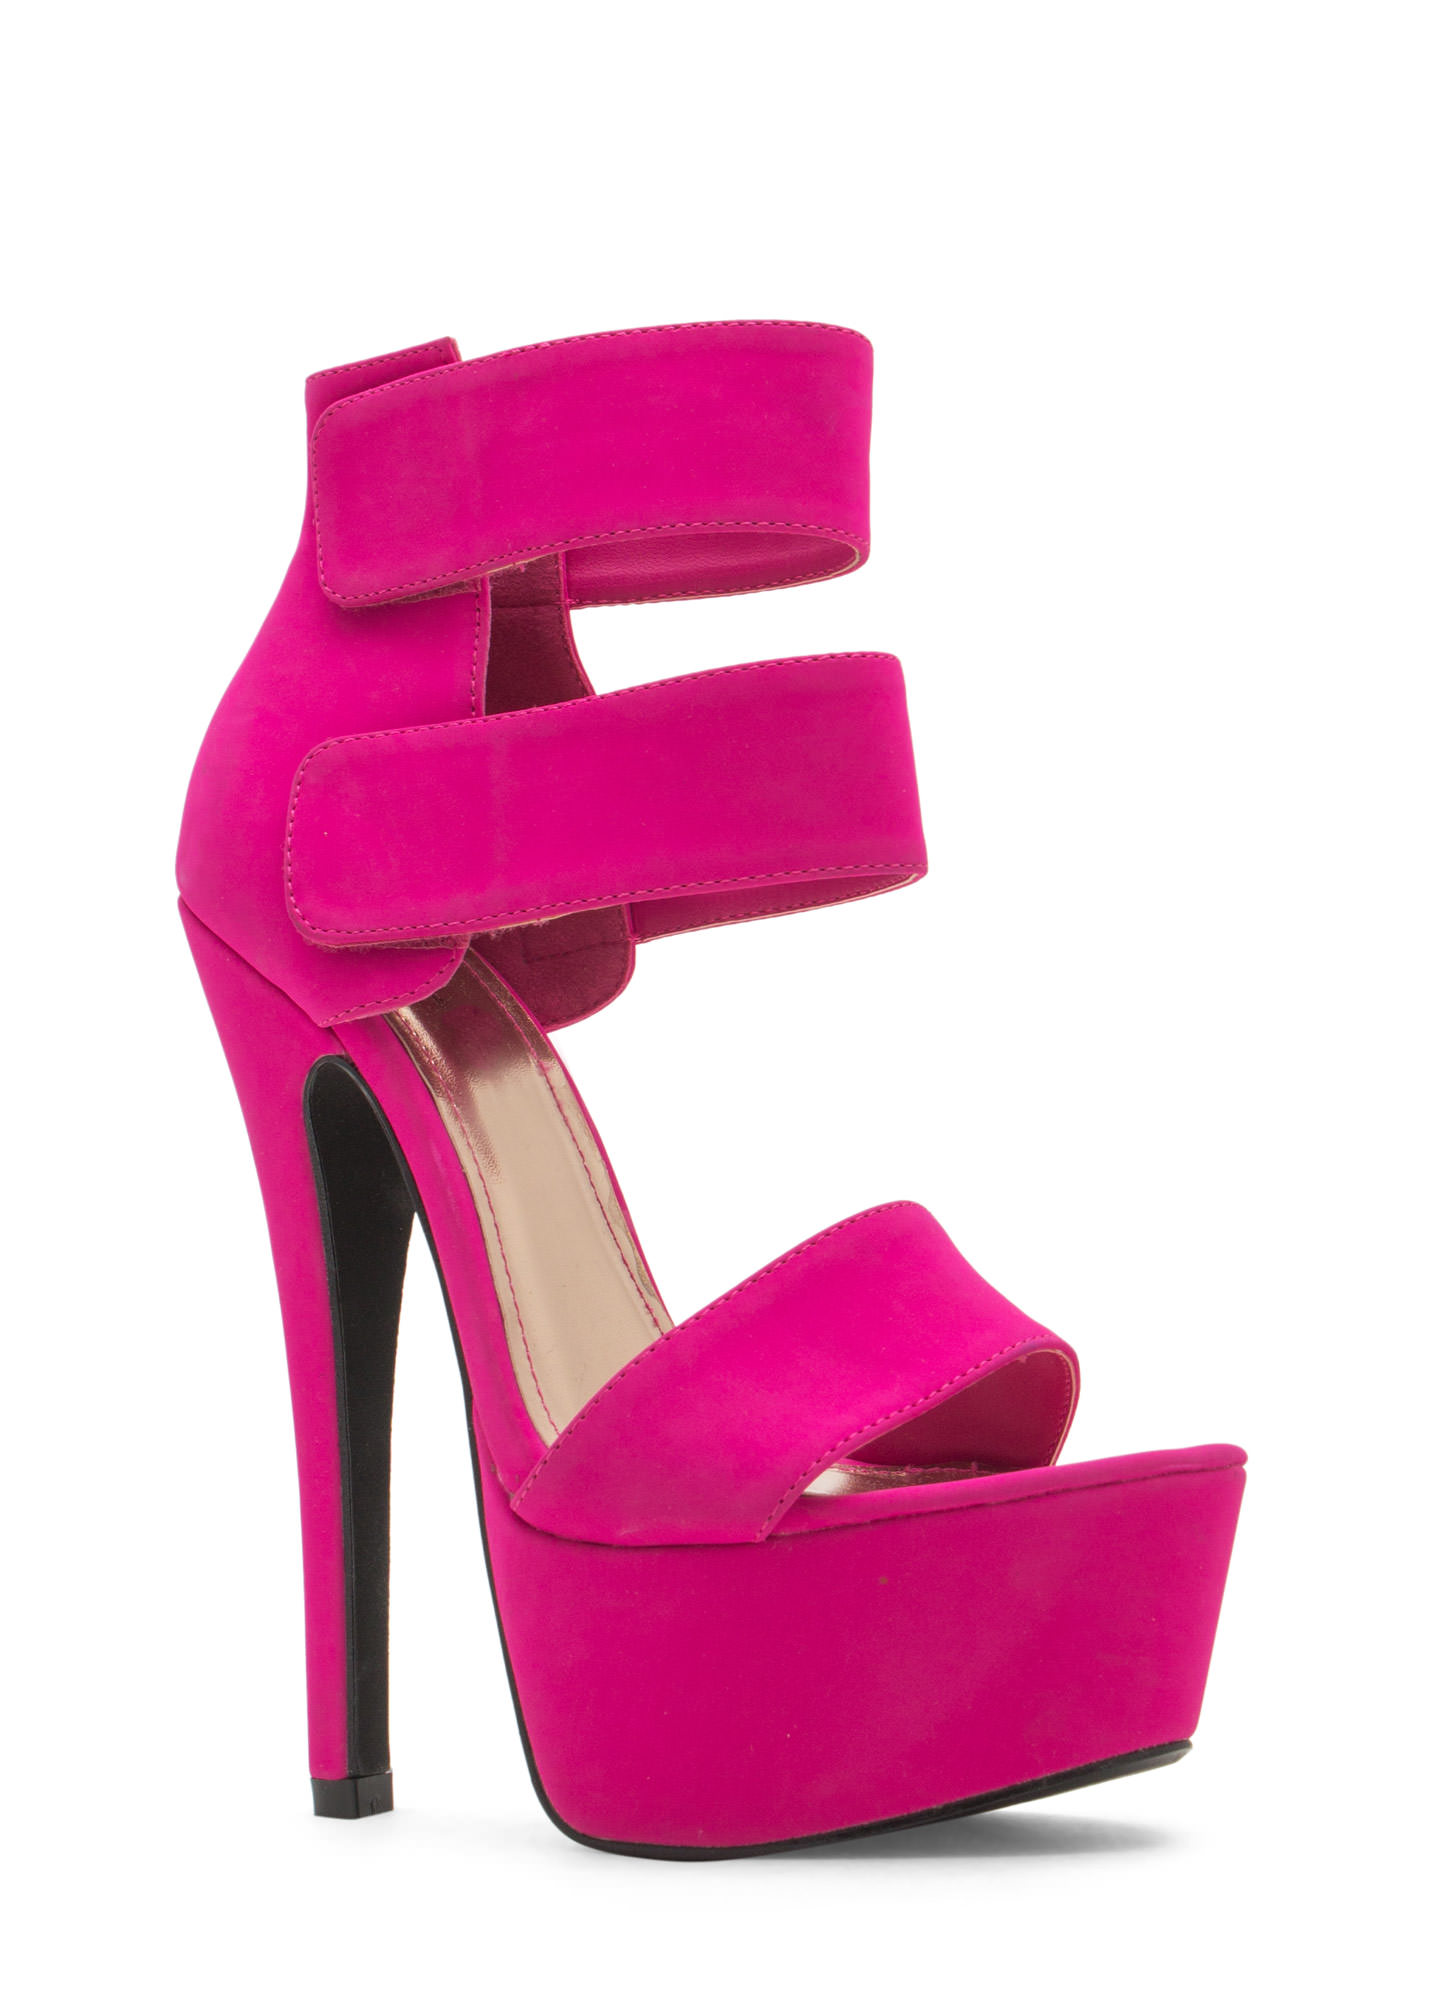 Double Trouble Strappy Platform Heels MAGENTA